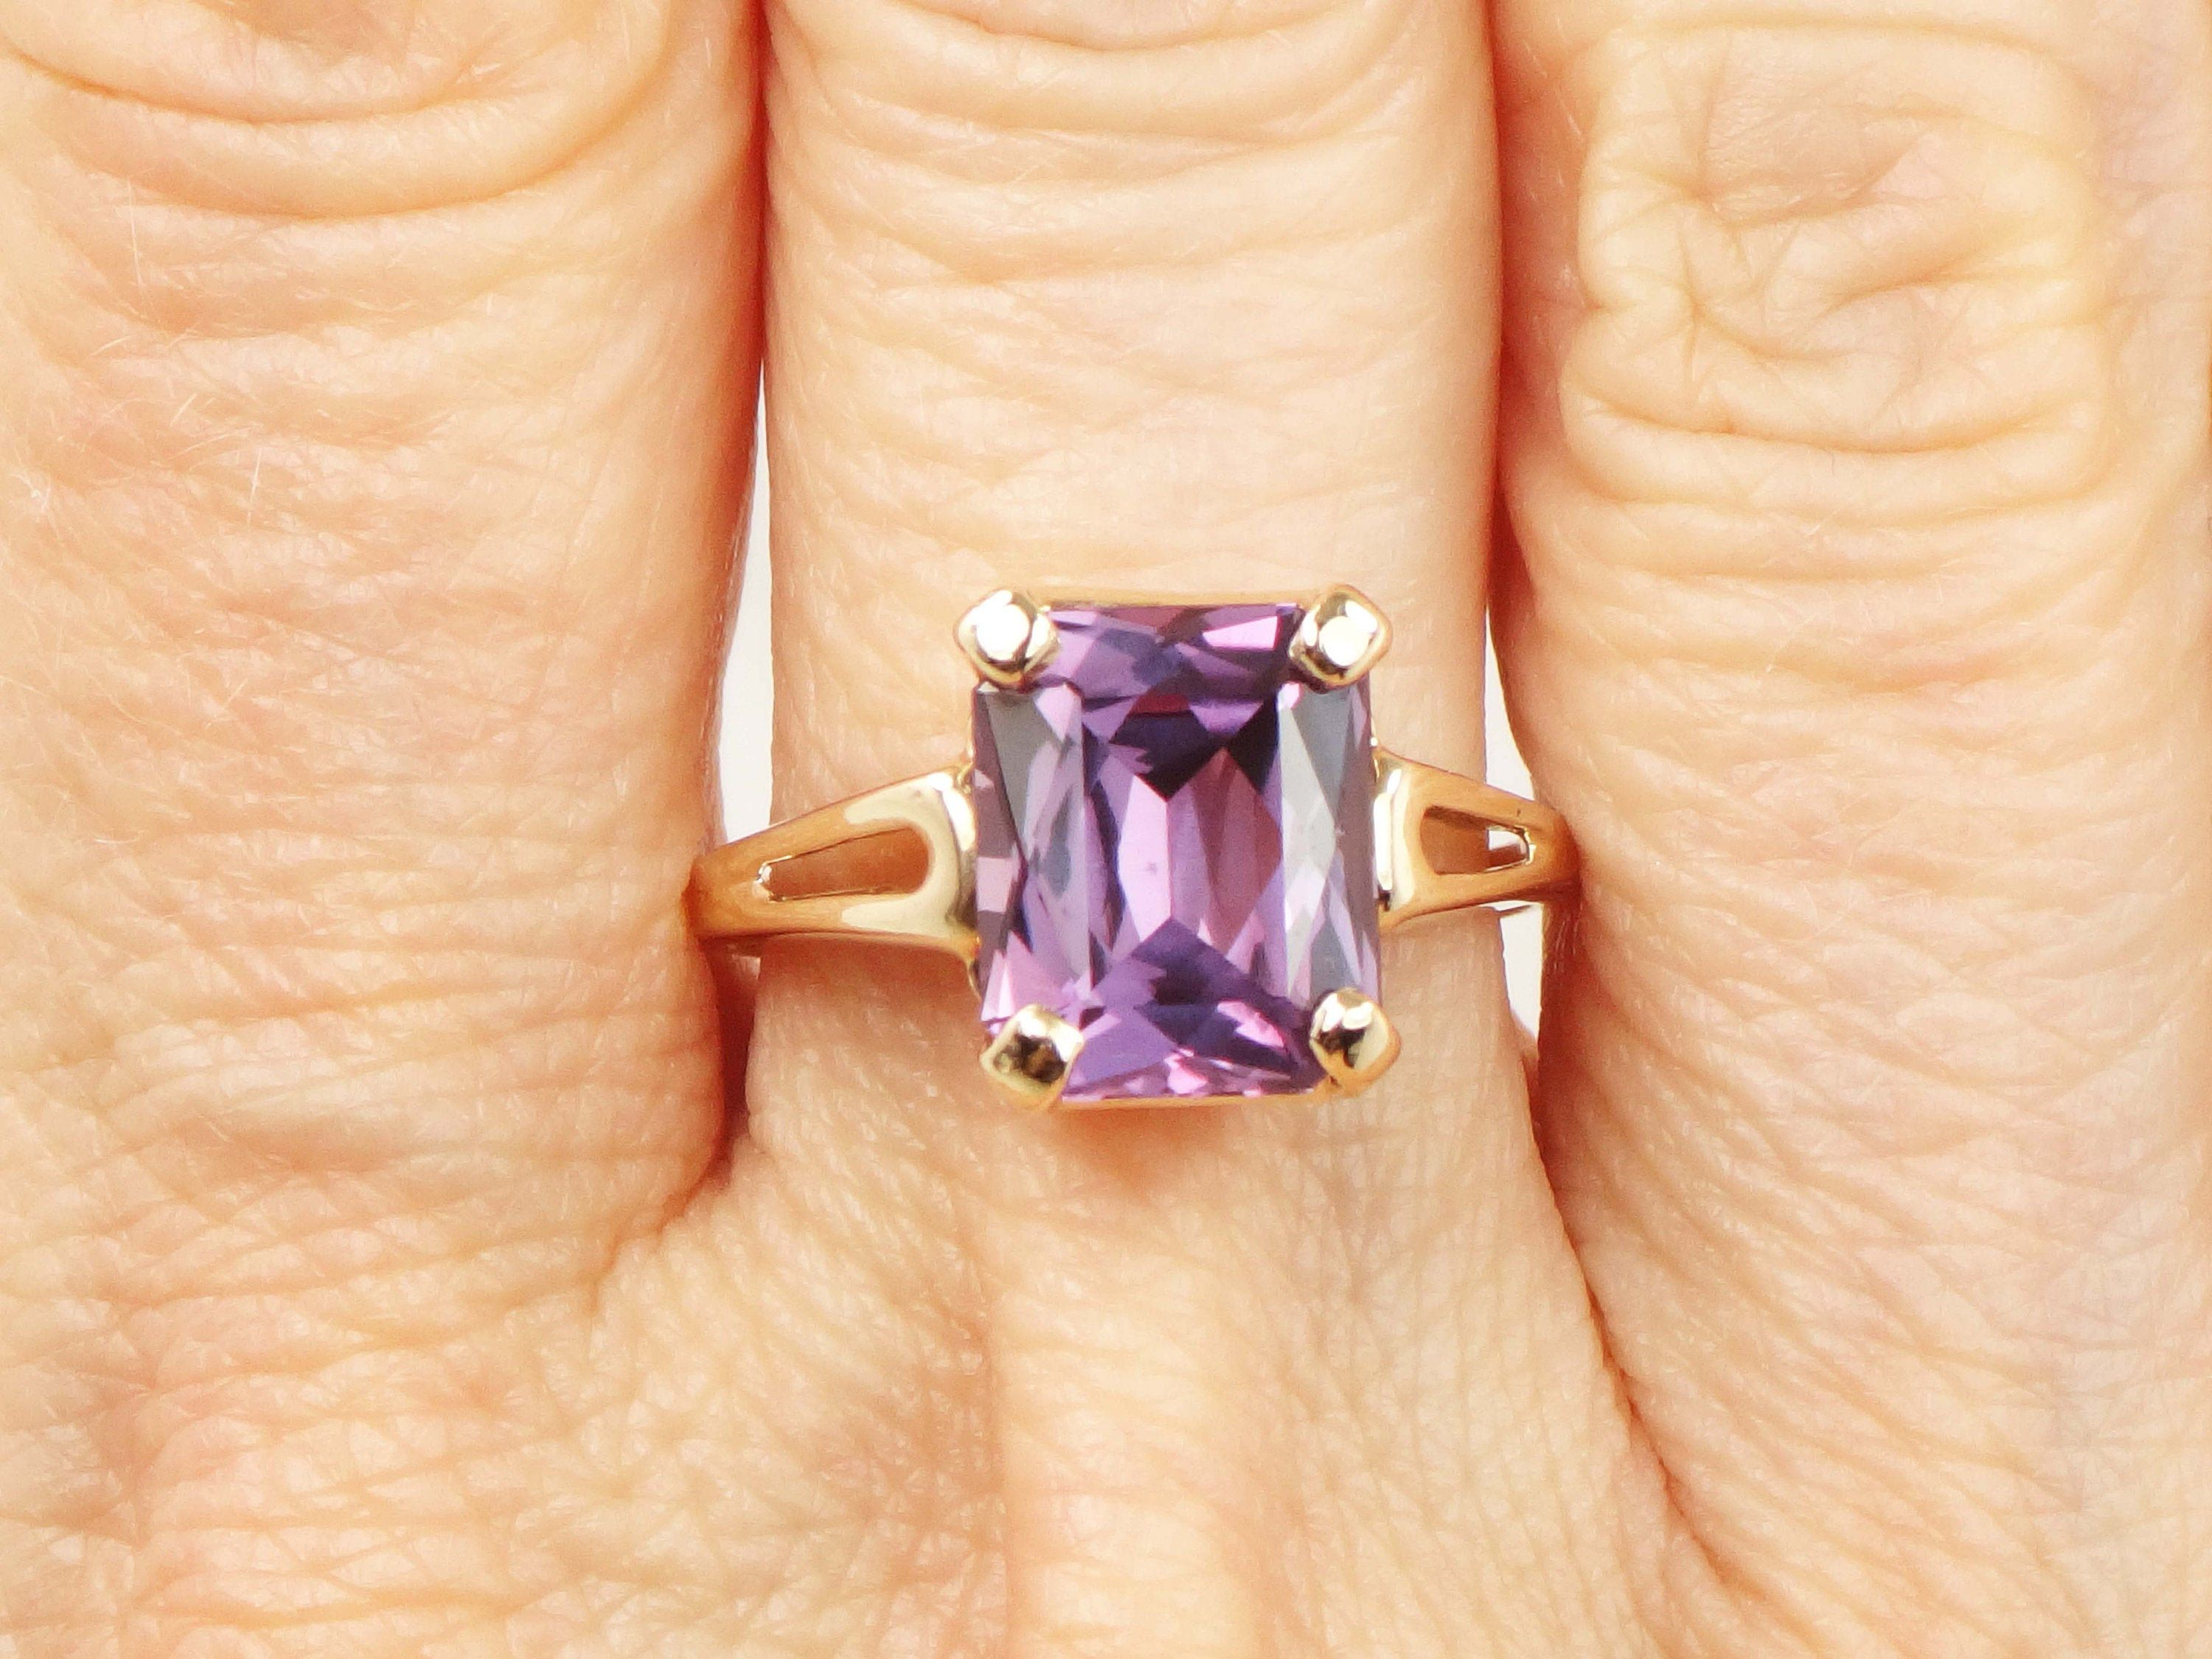 Vintage 10k Gold Ring Yellow Gold Ring Purple Sapphire Ring Amethyst Color Ring Size 6 3 4 Purple Stone Purple Sapphire Ring Purple Stone Rings Purple Sapphire